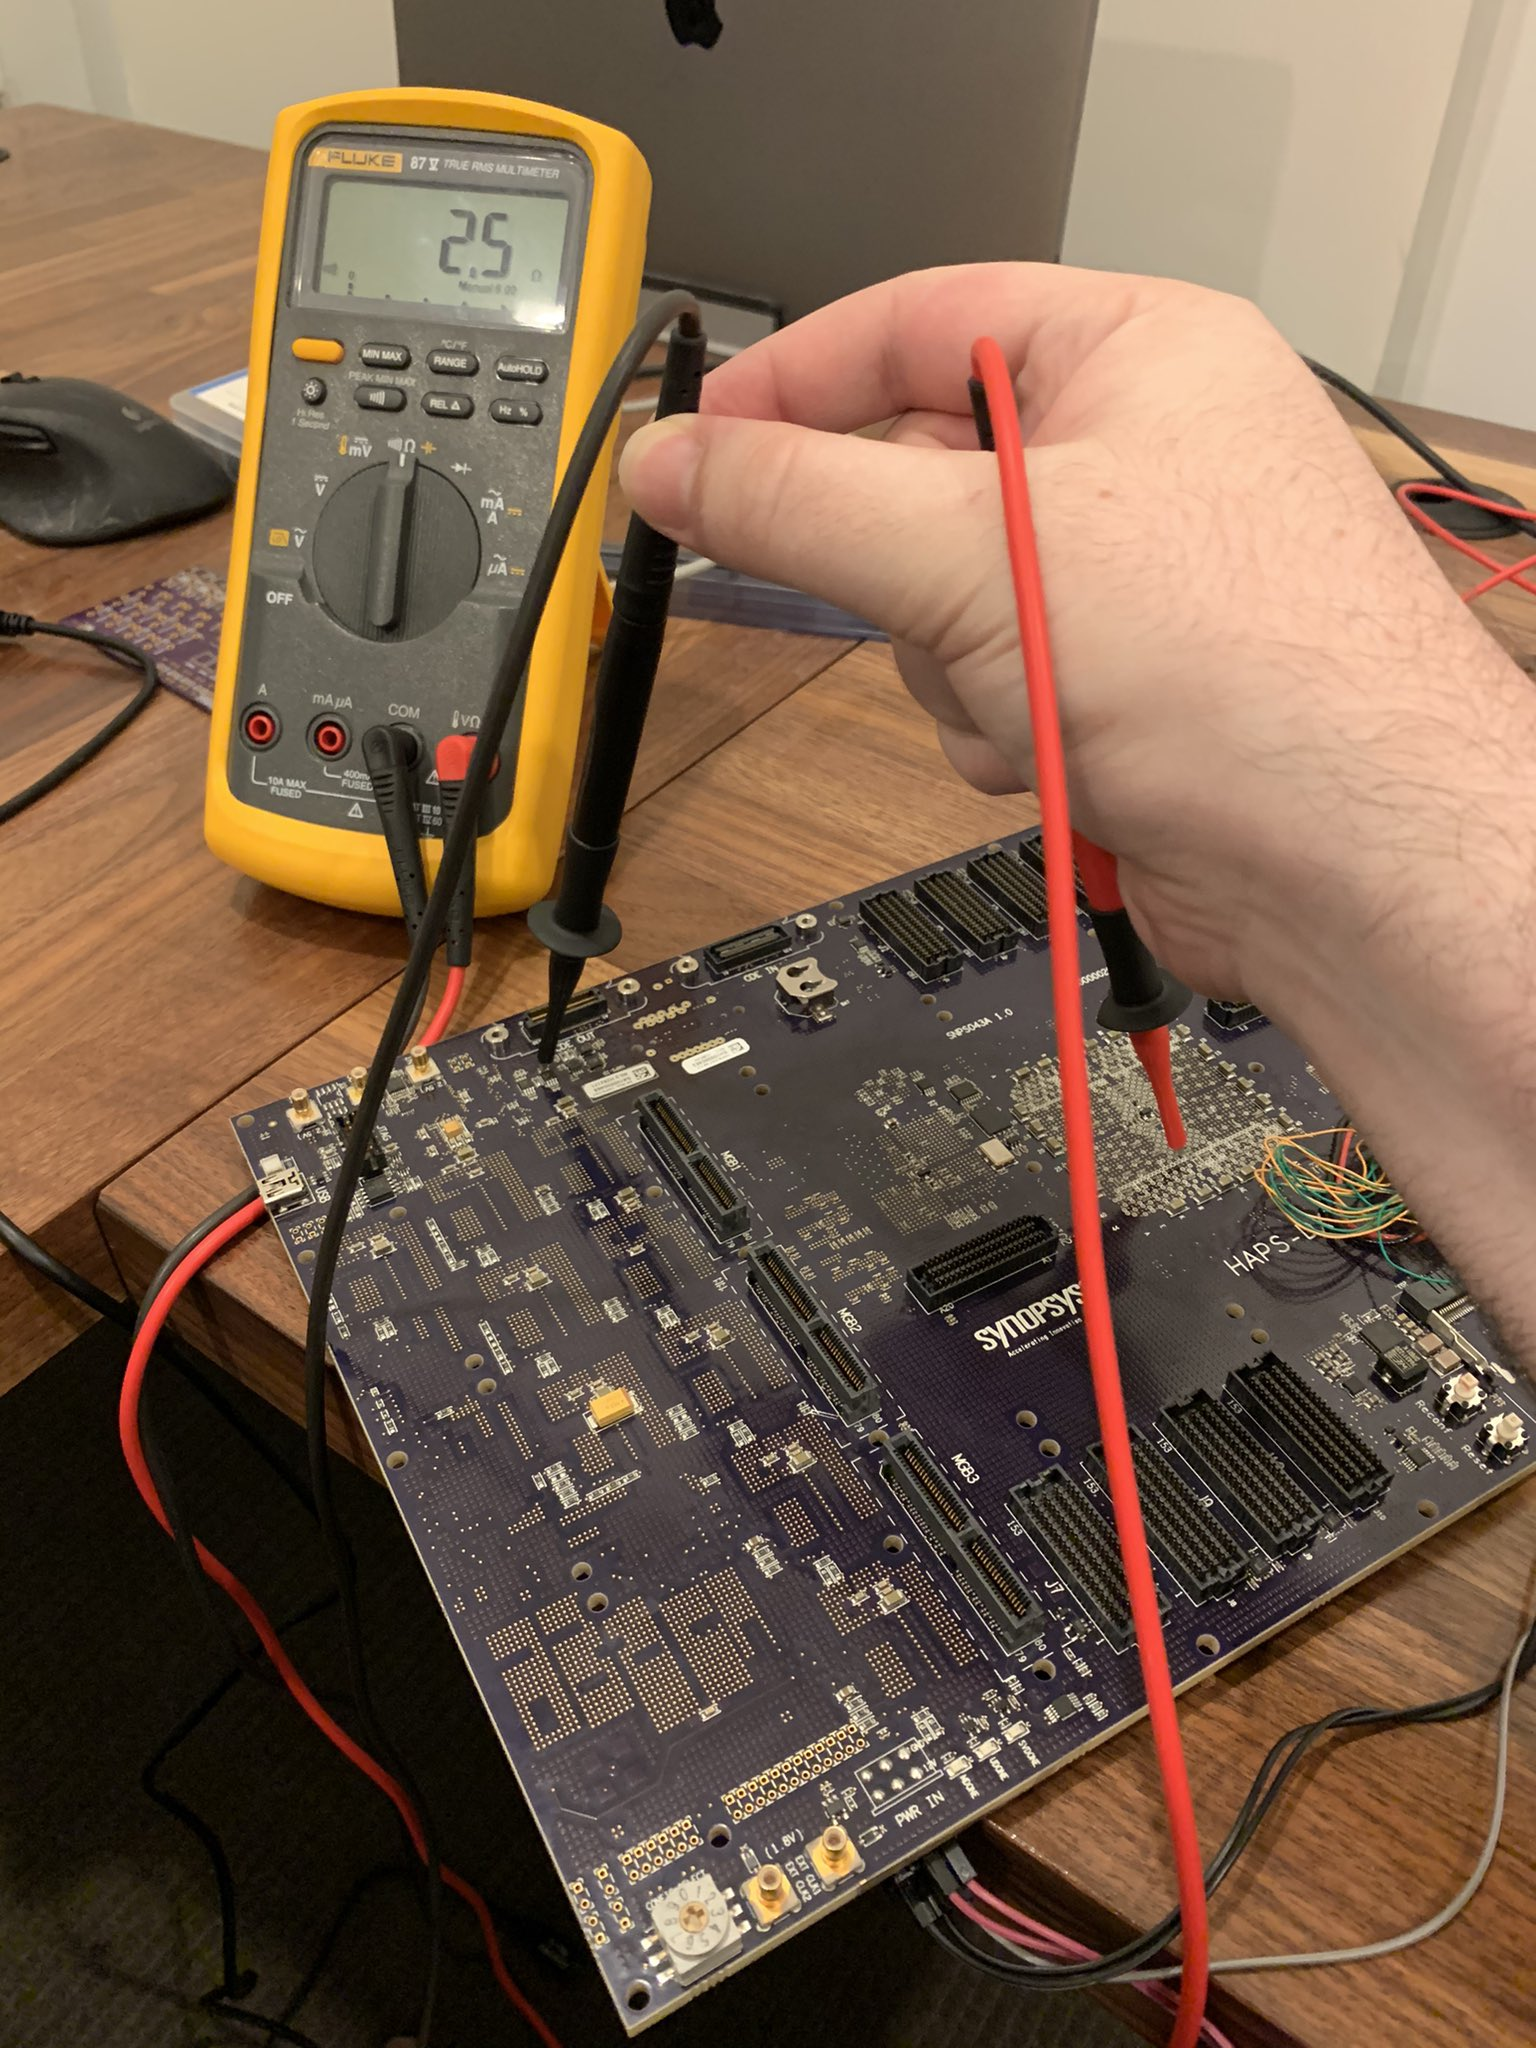 Probing the JTAG signals to trace them